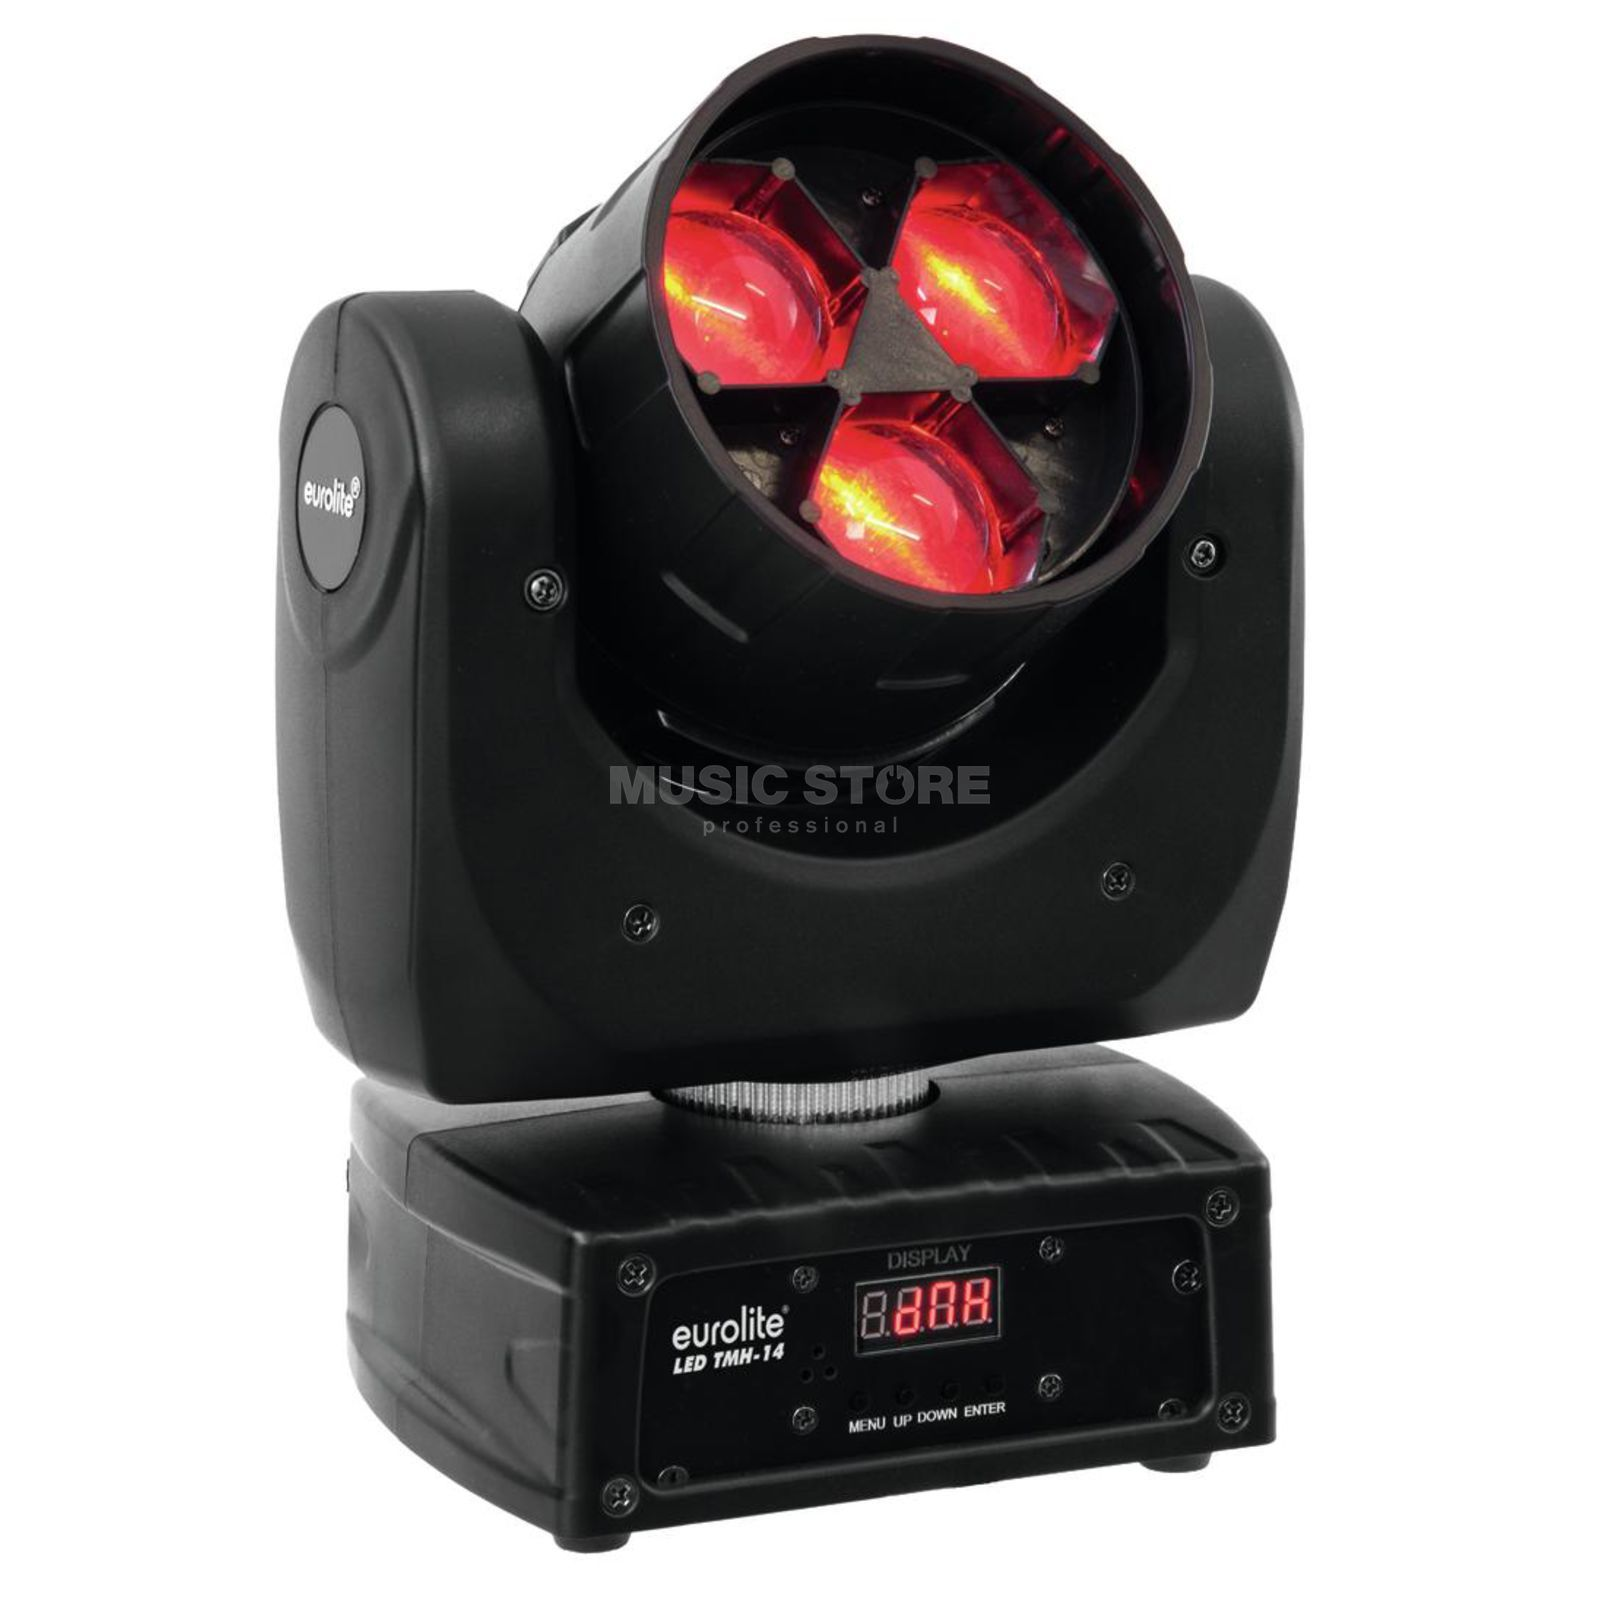 Eurolite LED TMH-14 Moving-Head QCL Zoom Wash 3 x 12W Produktbild